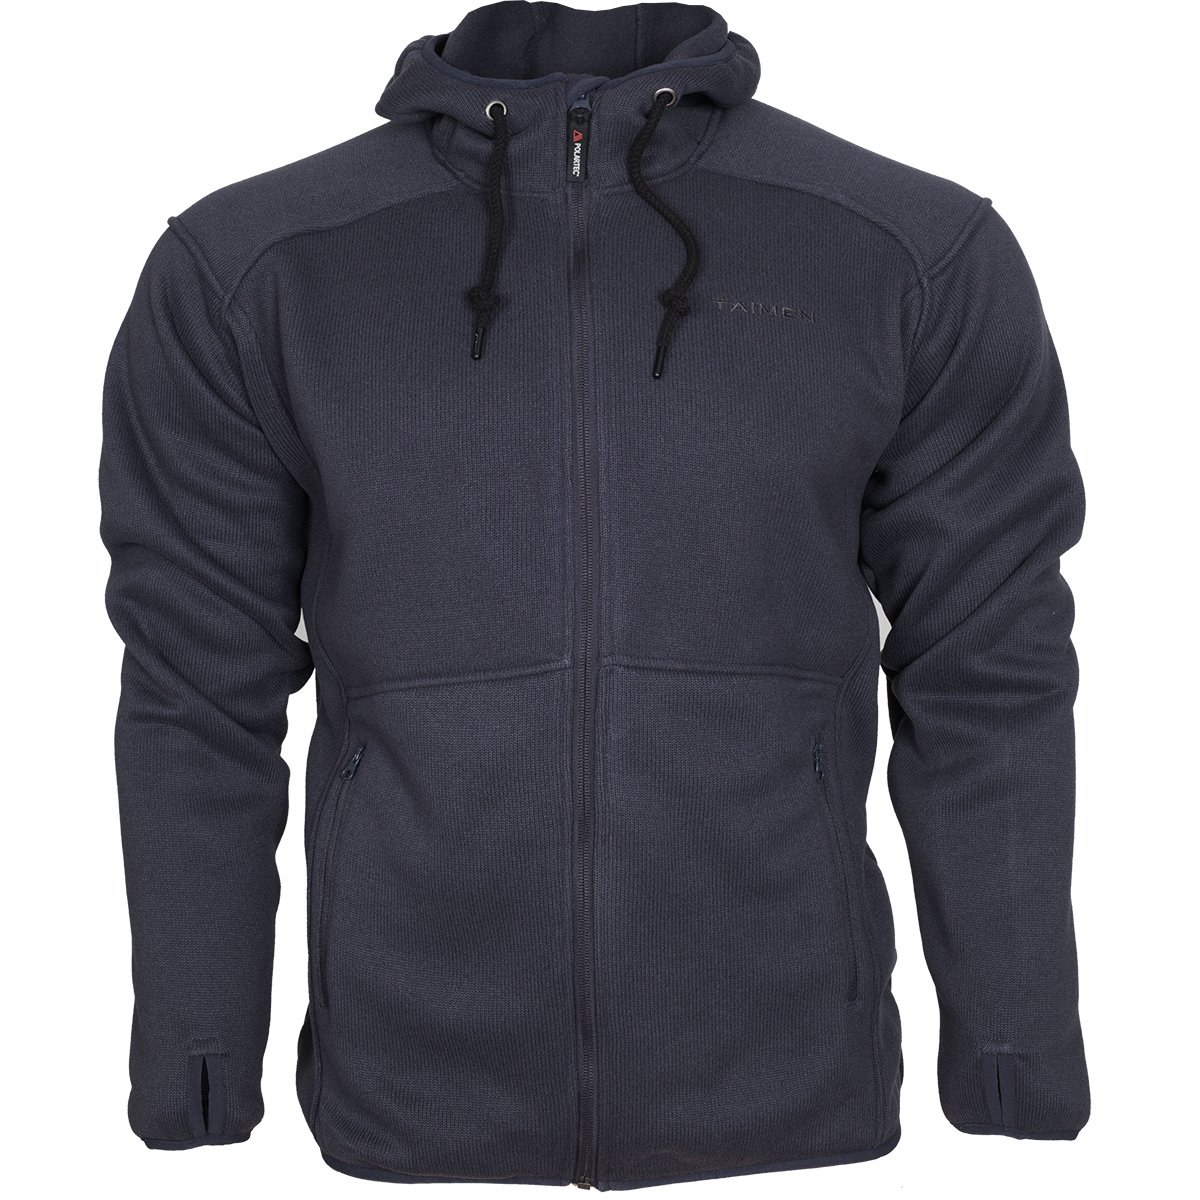 Taimen Polartec Thermal Pro Hoody Sweater